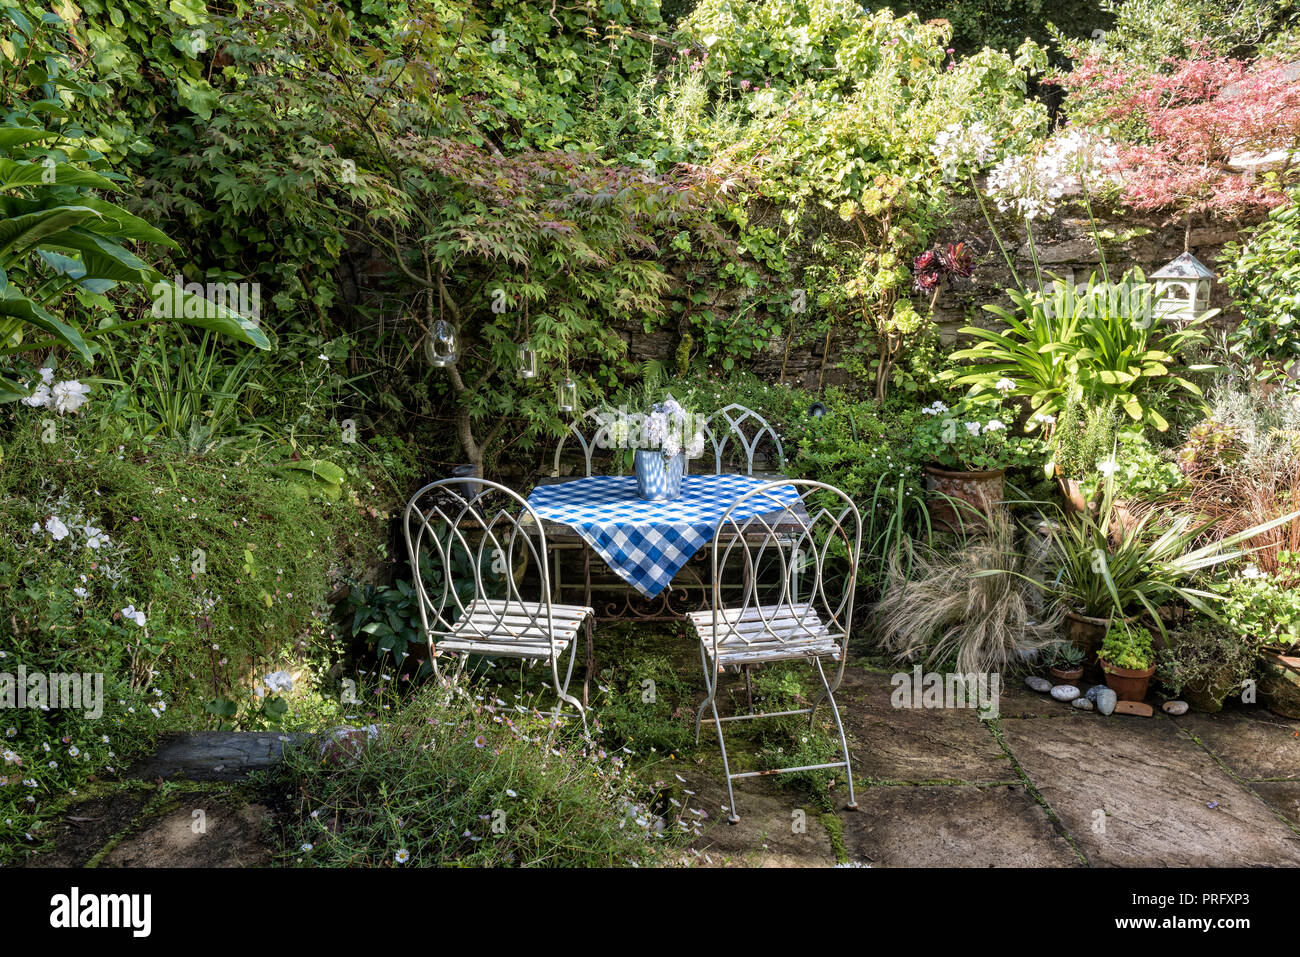 Painted Blue Table And White Chairs Photos & Painted Blue Table And ...